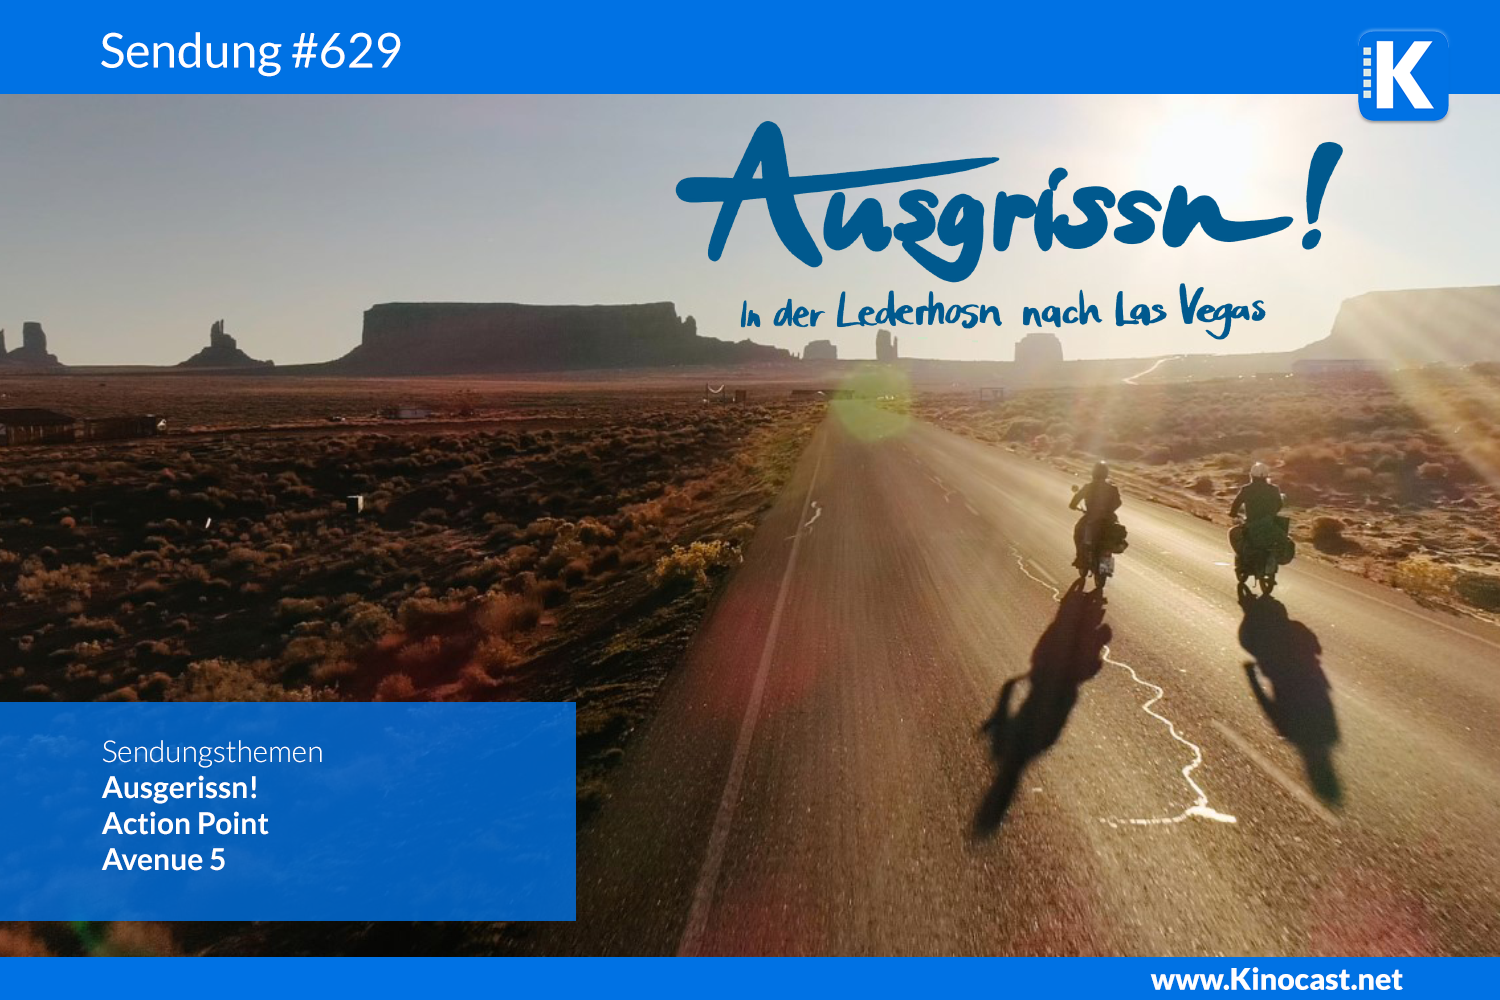 Ausgrissn In der Lederhosn nach Las Vegas Action Point Avenue Download film german deutsch Podcast